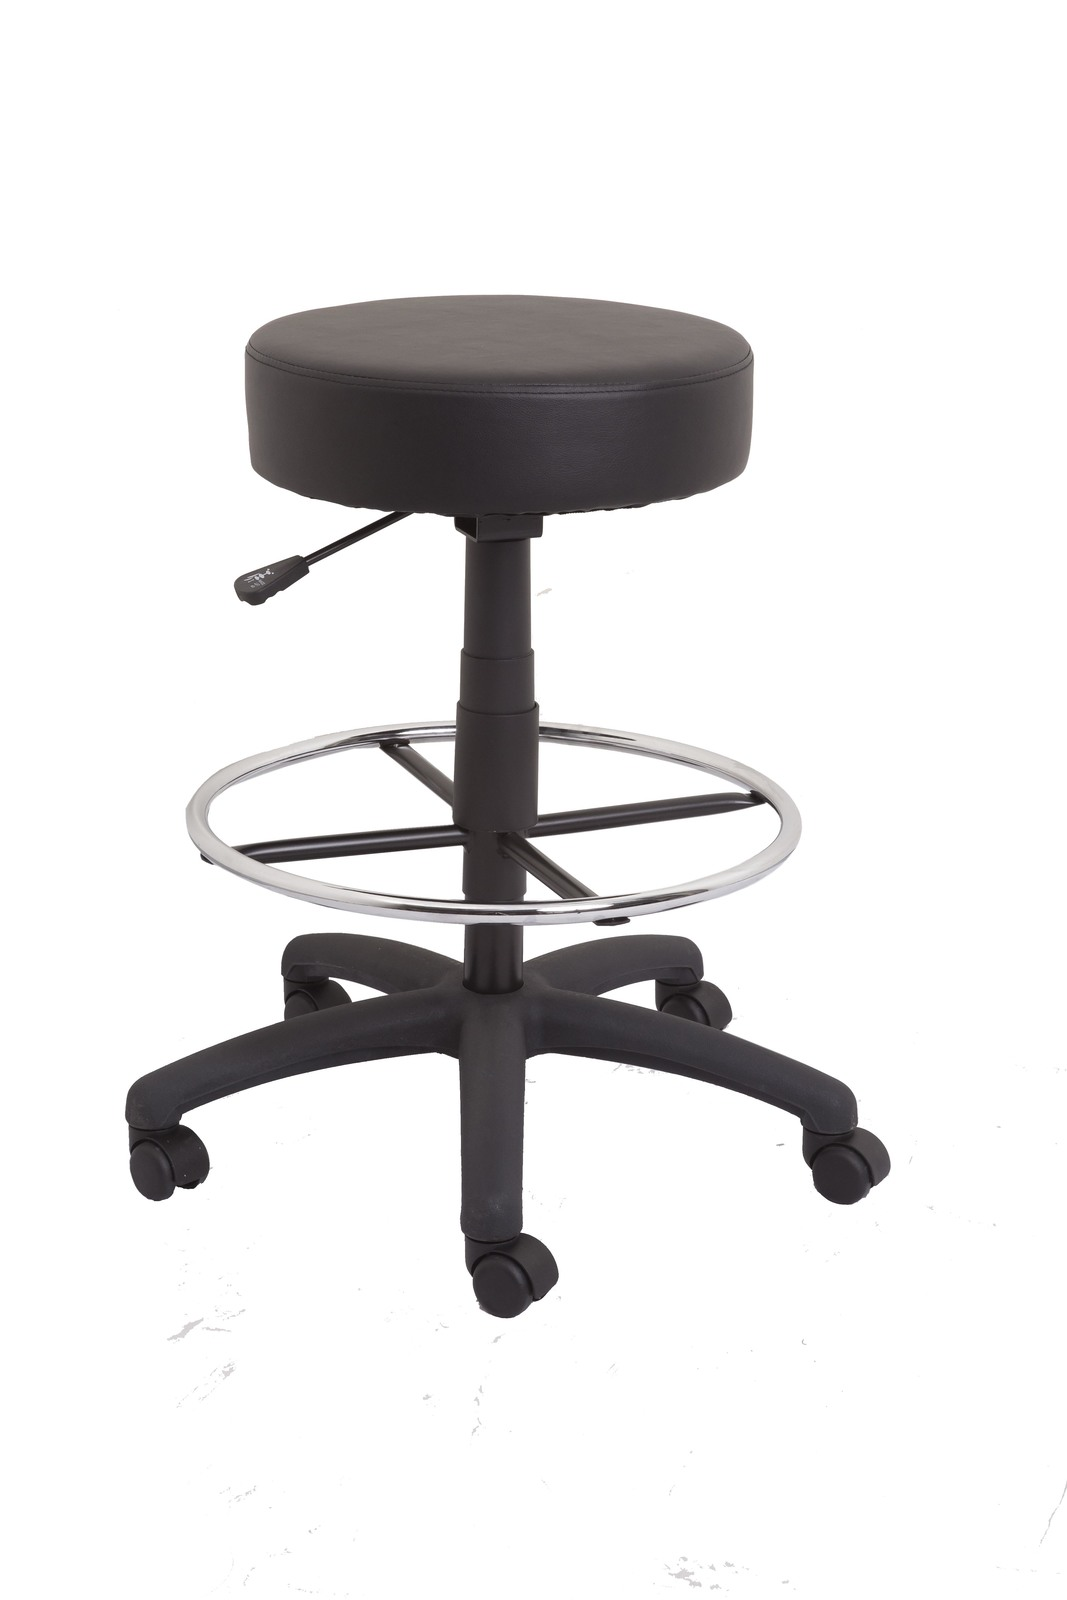 drafting table chair height meditation amazon counter stool